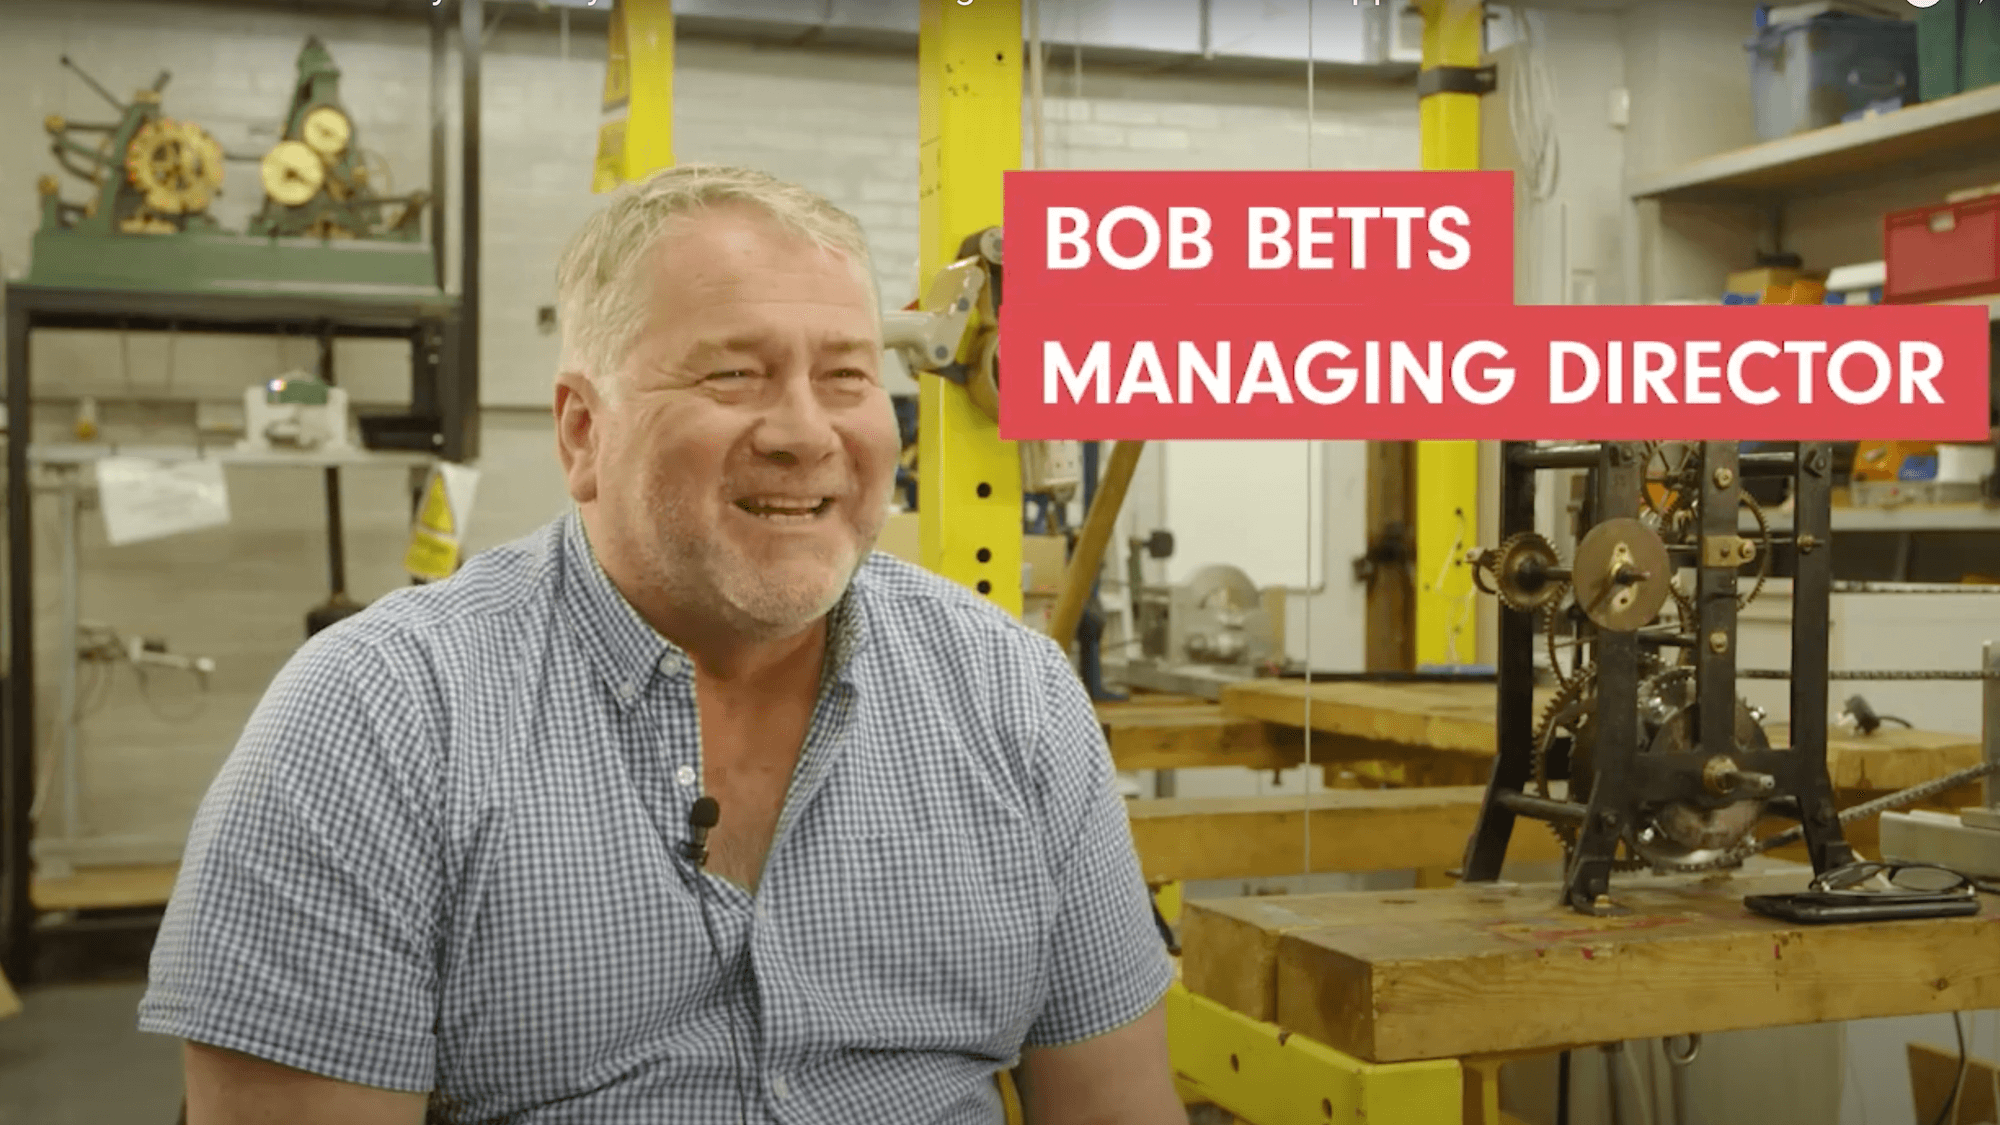 Video interview with Bob Betts, Managing Director of Smith of Derby Ltd